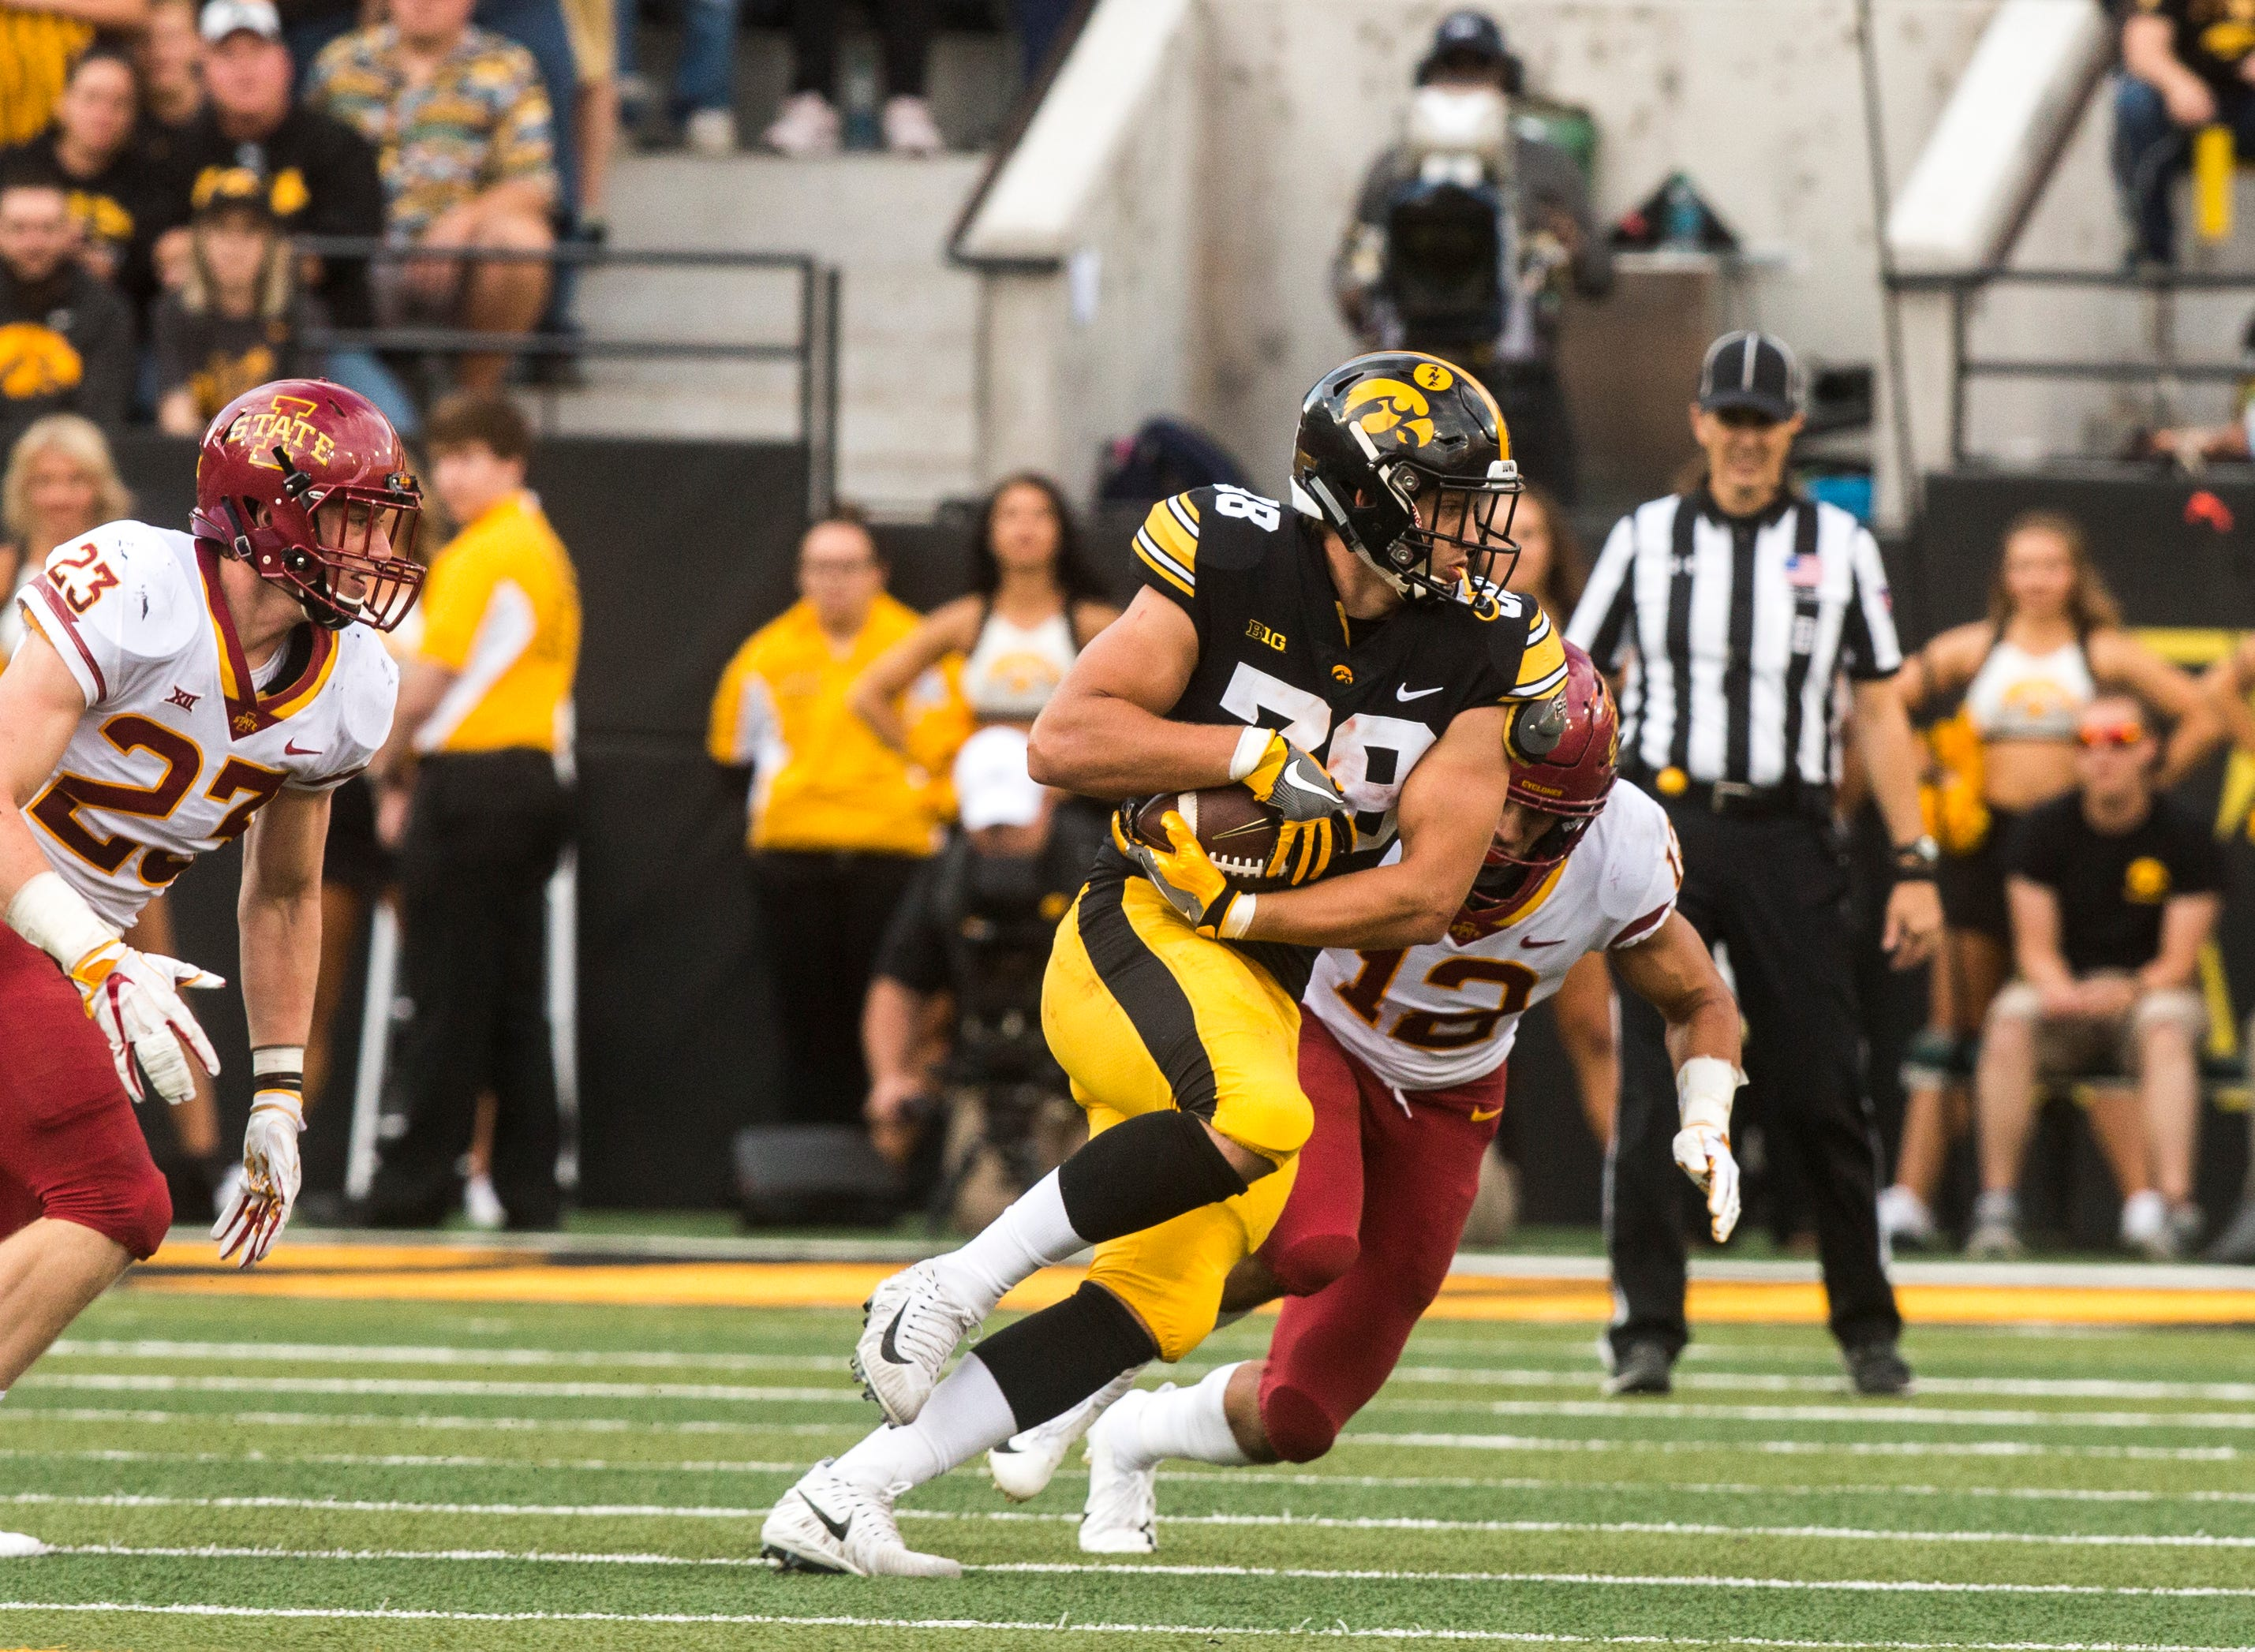 Iowa tight end T.J. Hockenson (38) gets tackled by Iowa State defensive back Greg Eisworth (12) during the Cy-Hawk NCAA football game on Saturday, Sept. 8, 2018, at Kinnick Stadium in Iowa City.